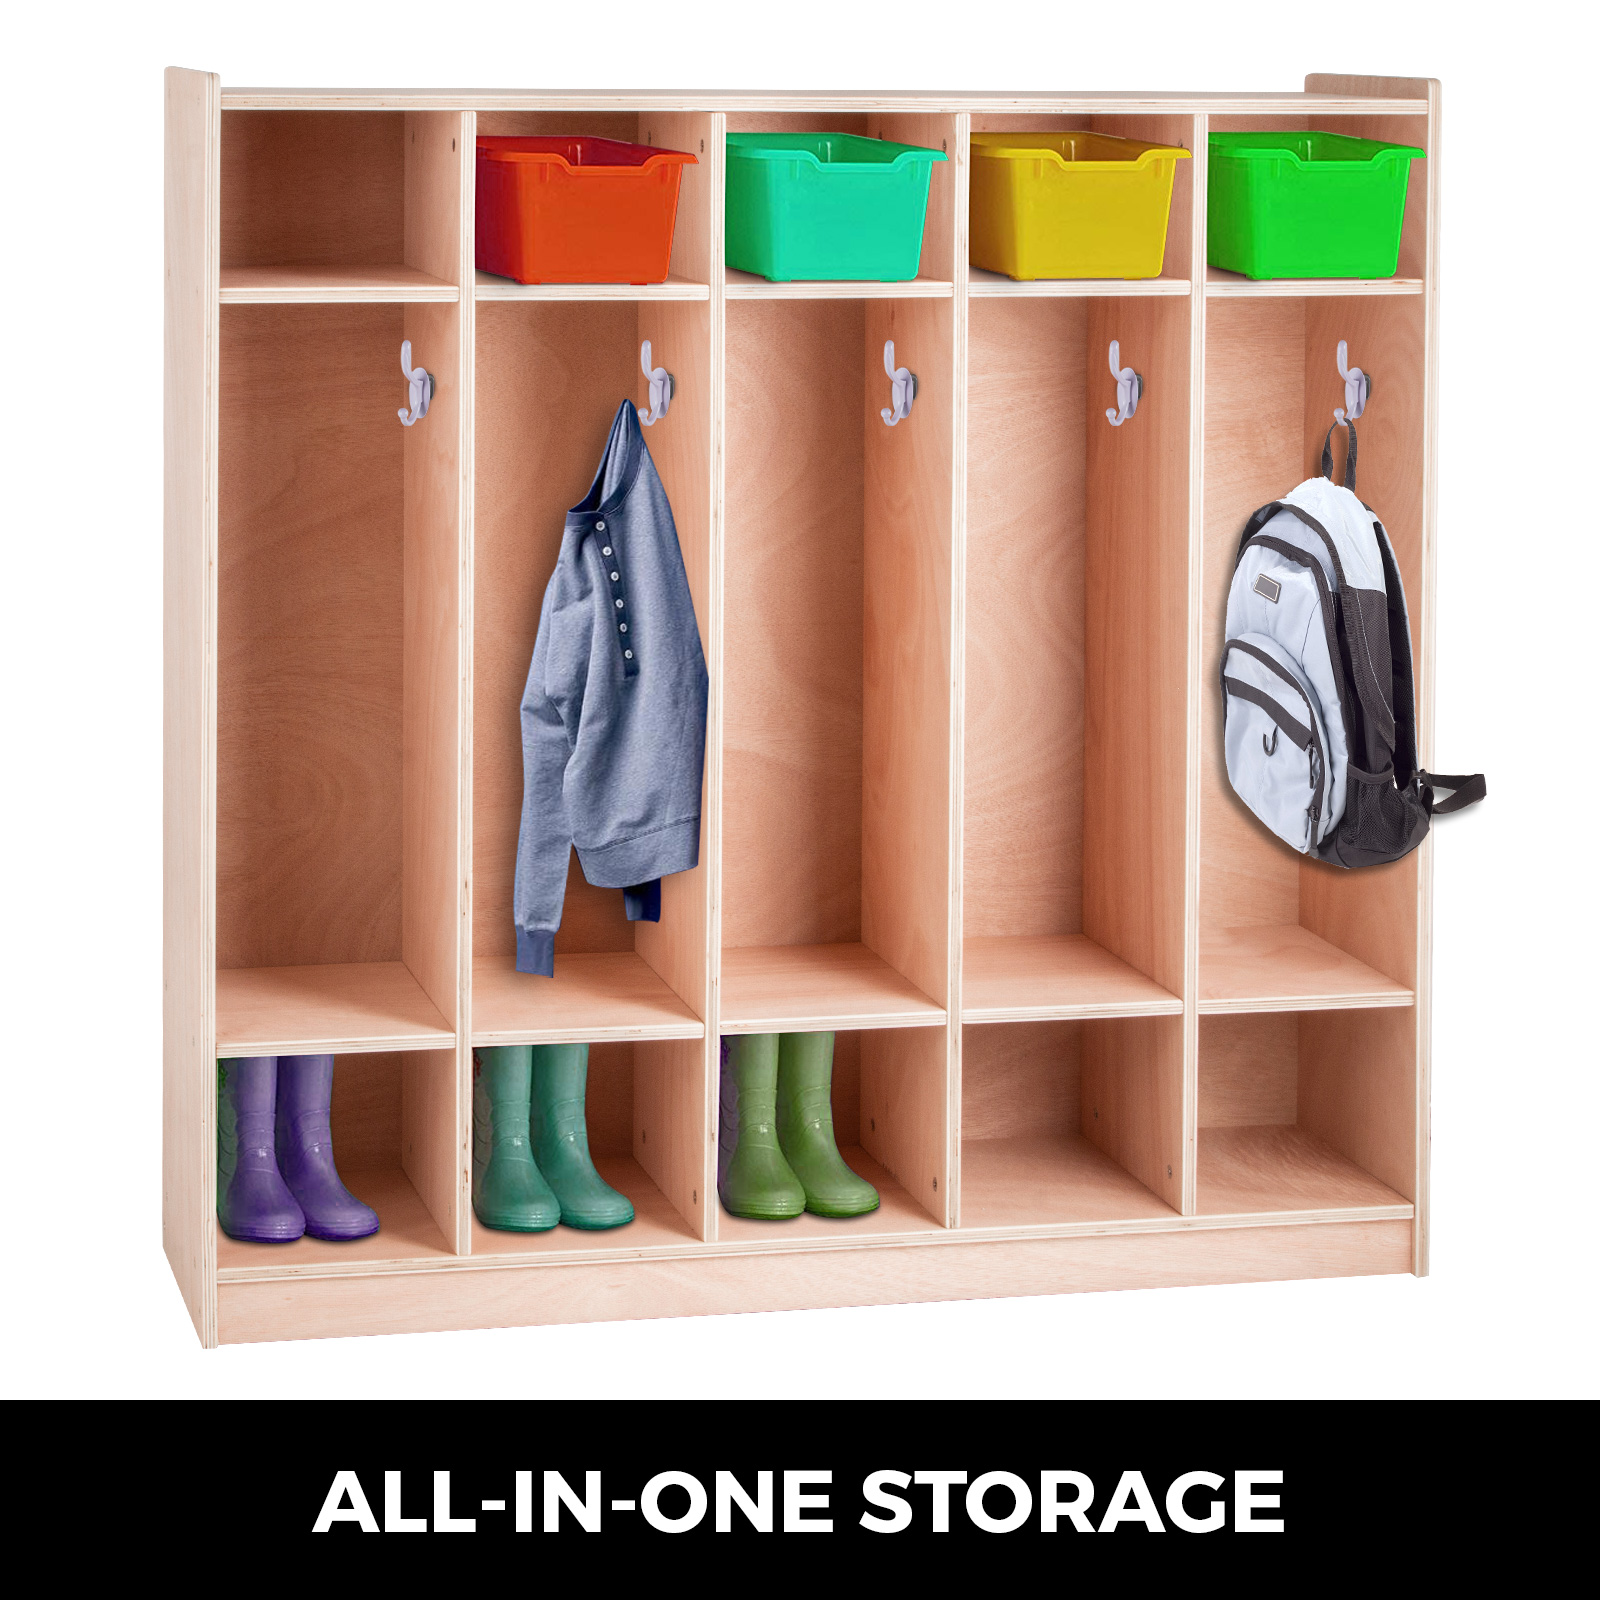 Size : 3-Tier Cylficl Multifunctional ABS Assembly Locker Simple Baby Wardrobe Children Locker Plastic Locker Free Combination